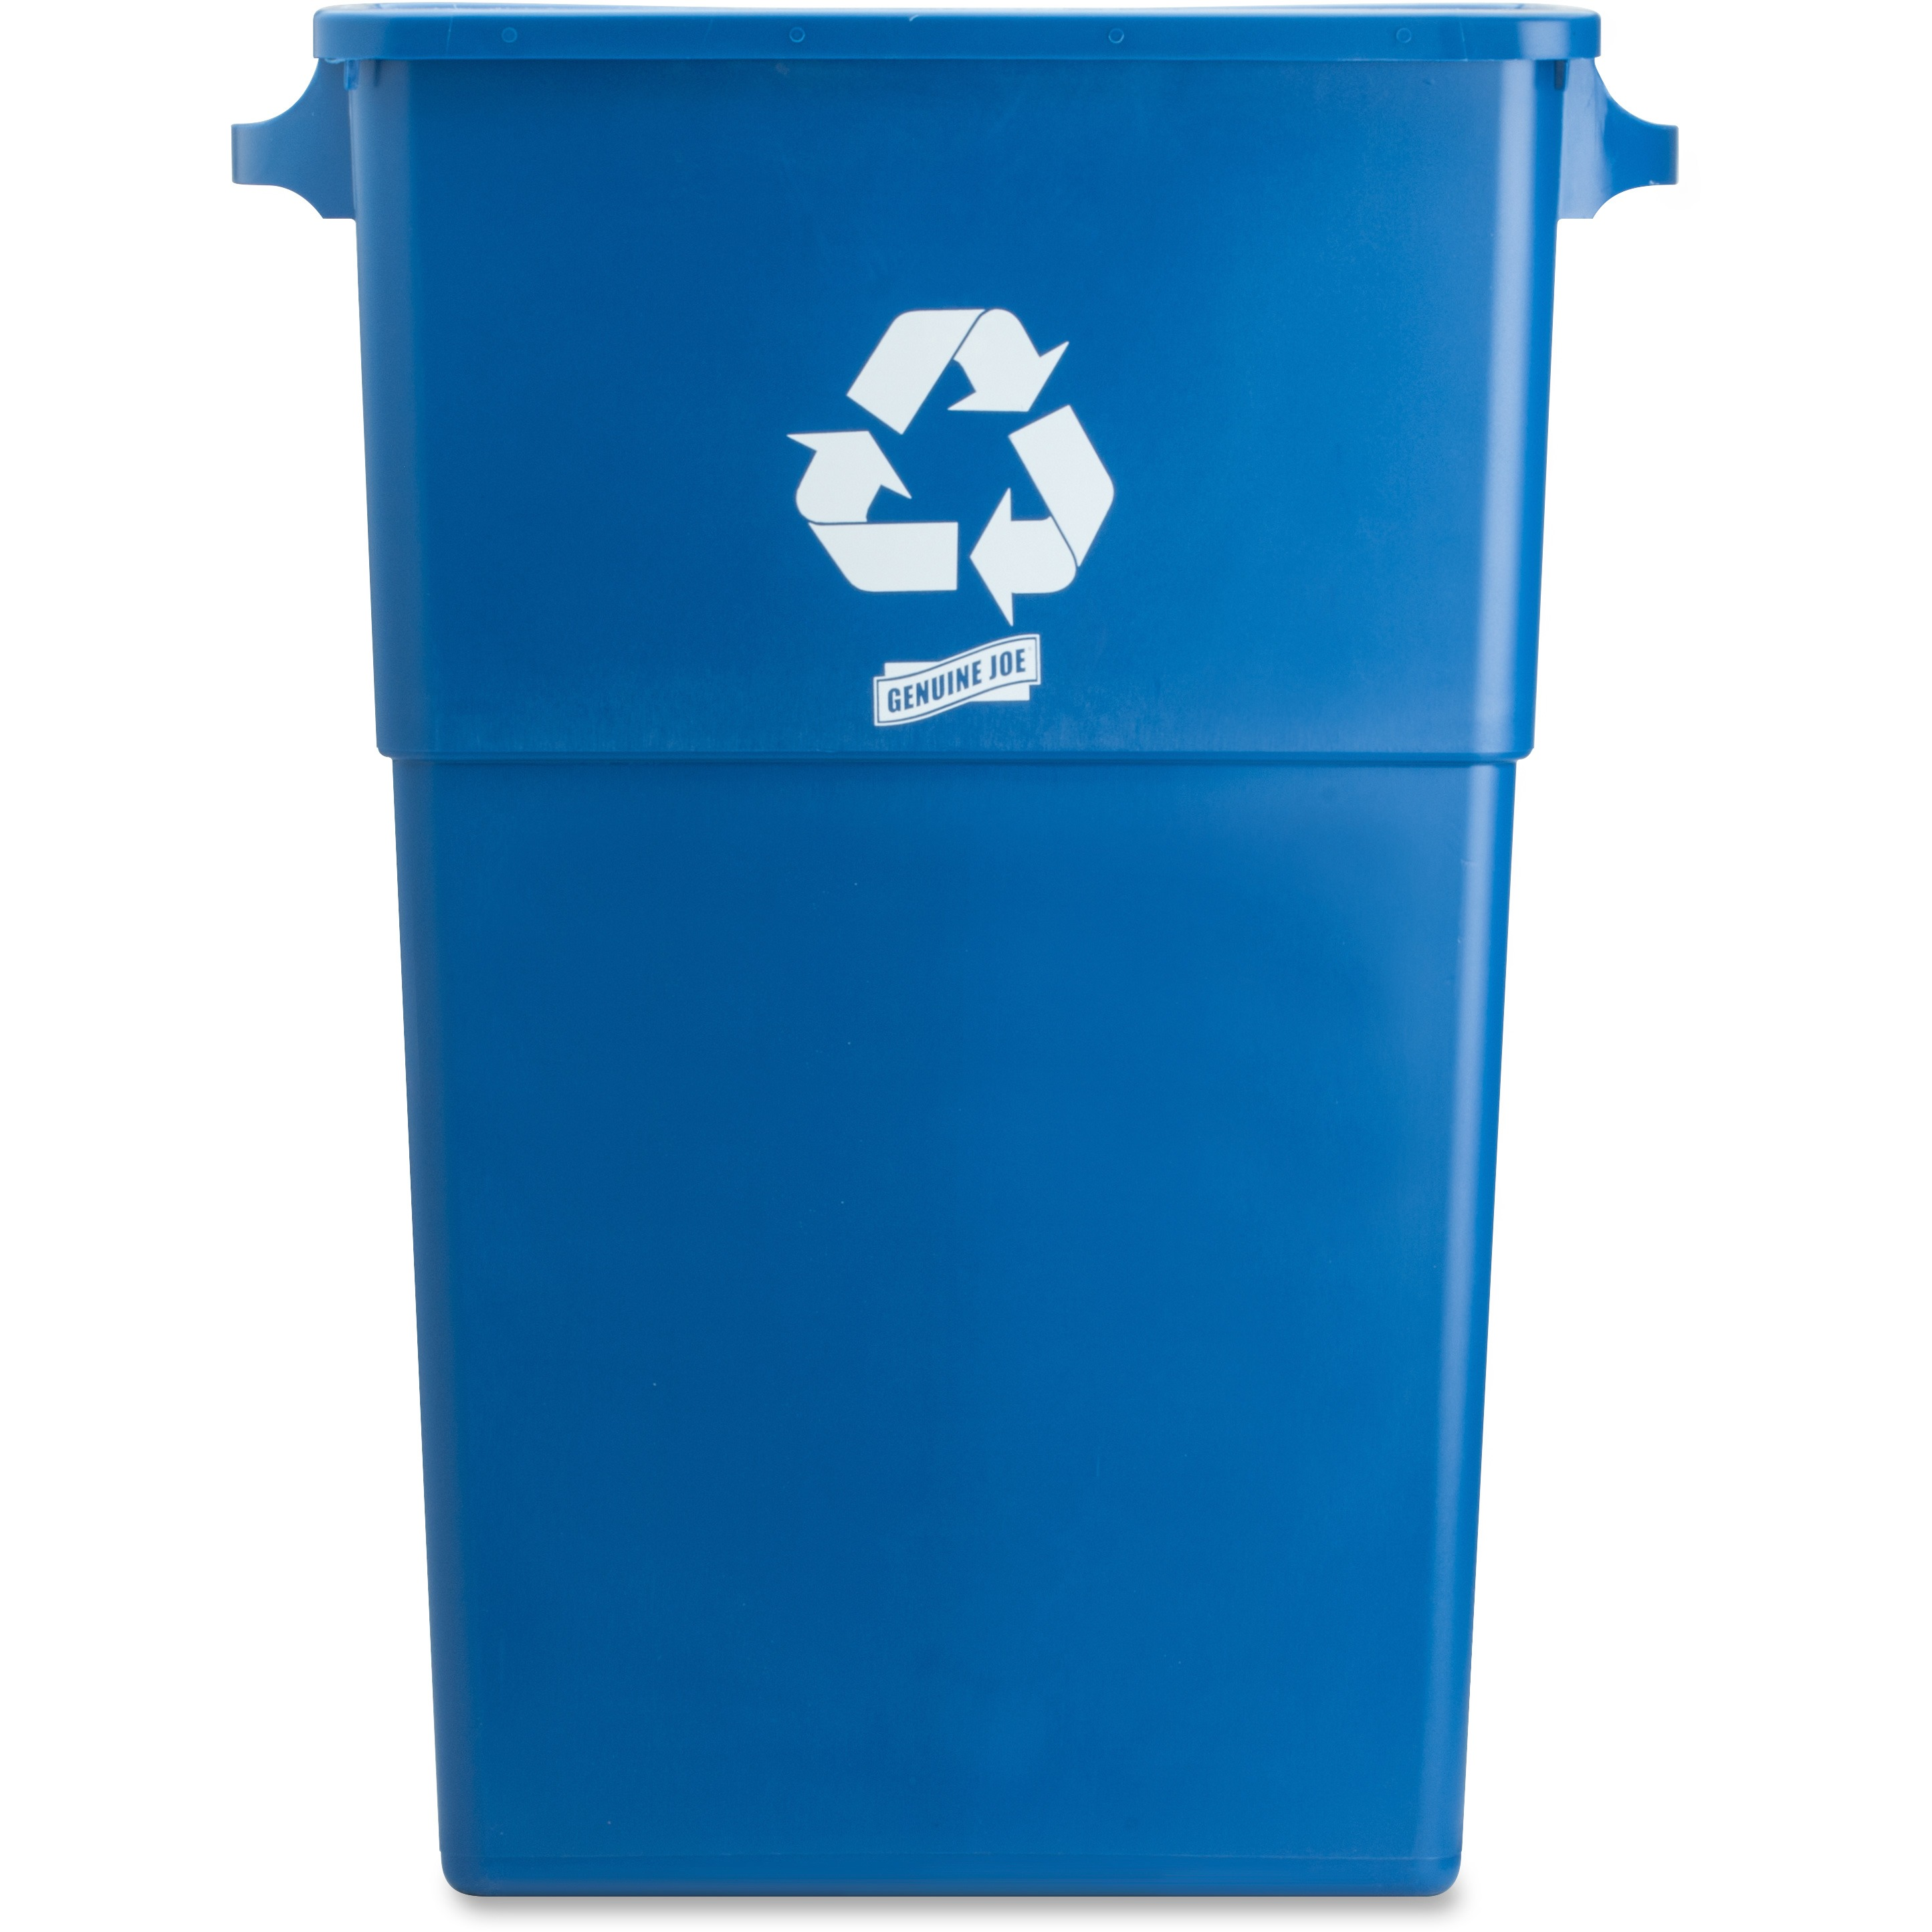 Genuine Joe 23 Gallon Recycling Bin